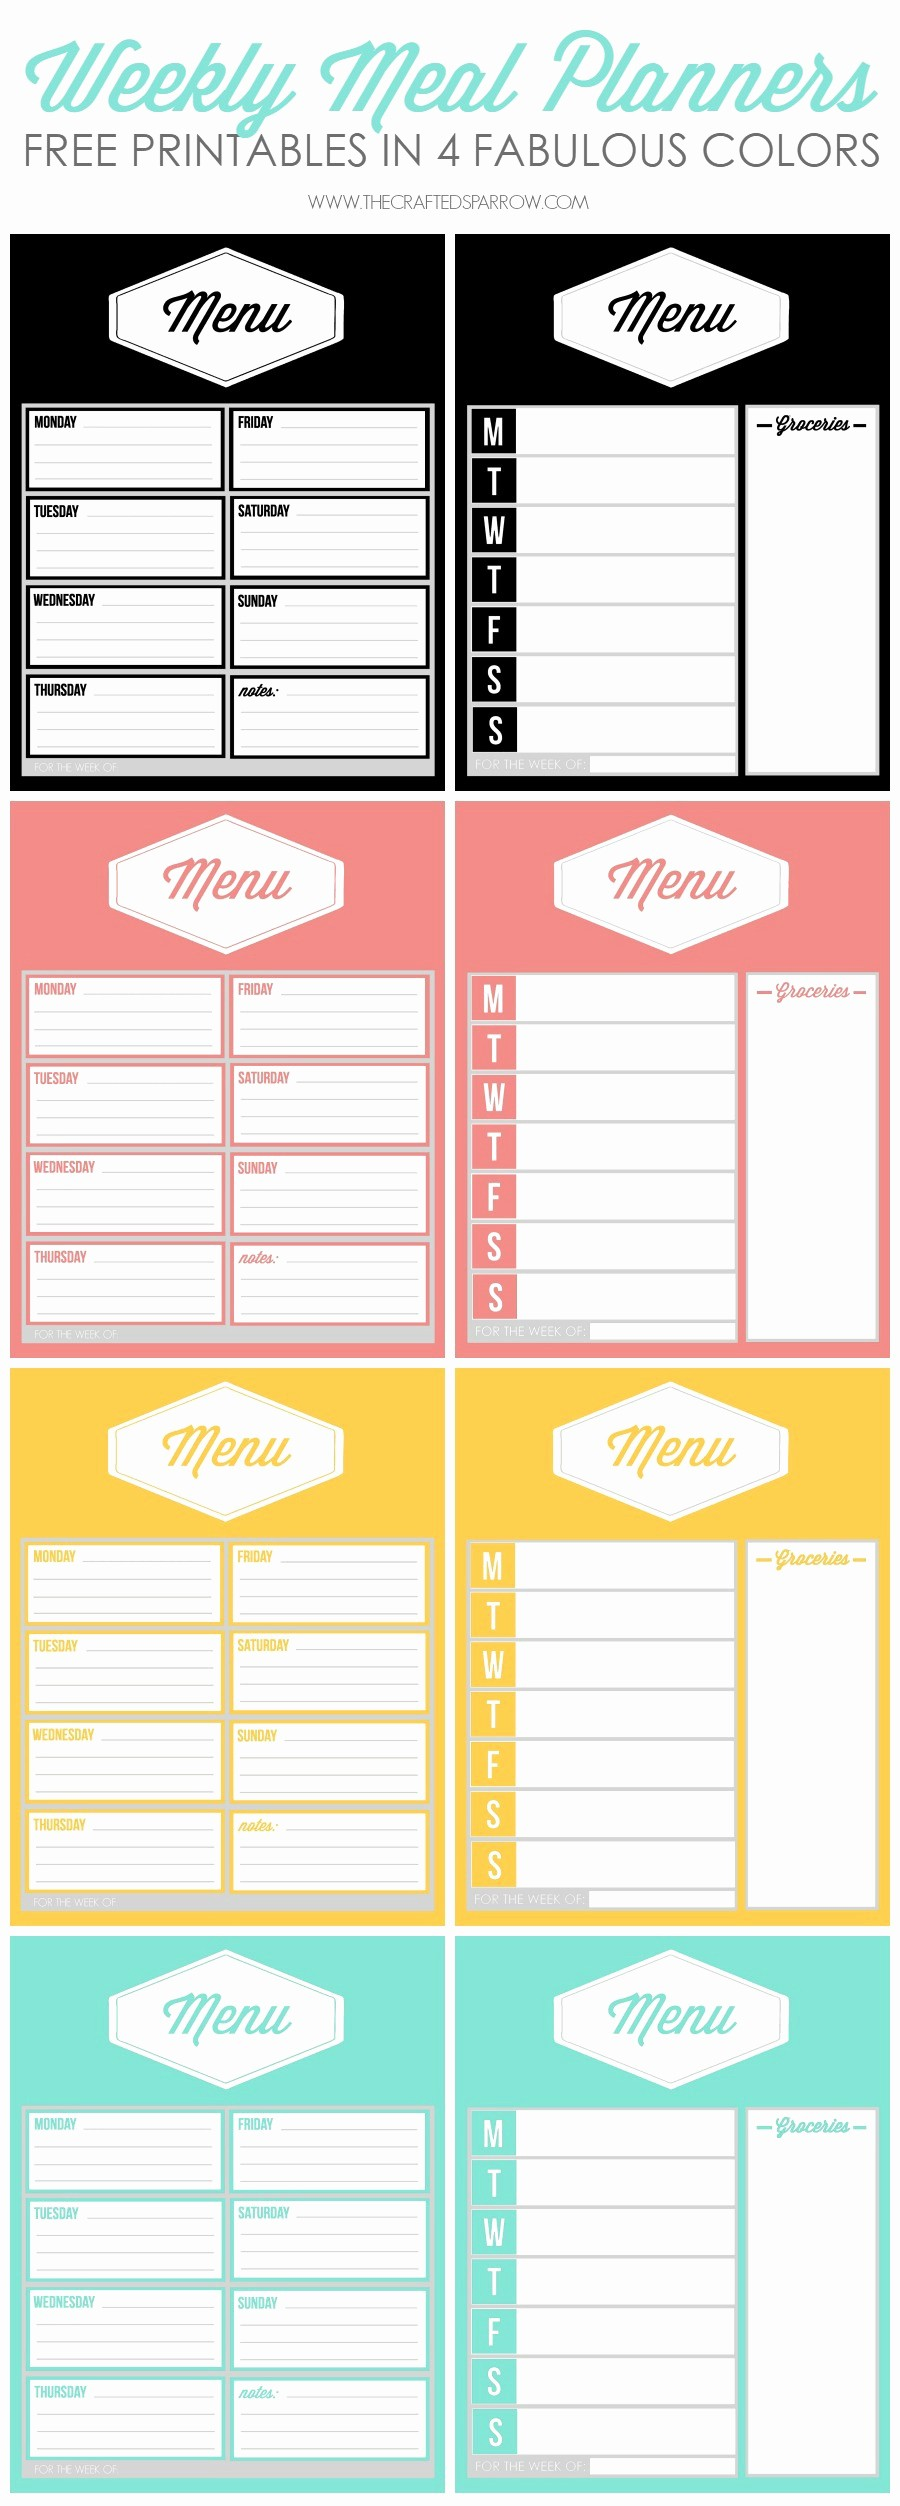 Weekly Meal Planner Templates Free Fresh Free Printable Weekly Meal Planners